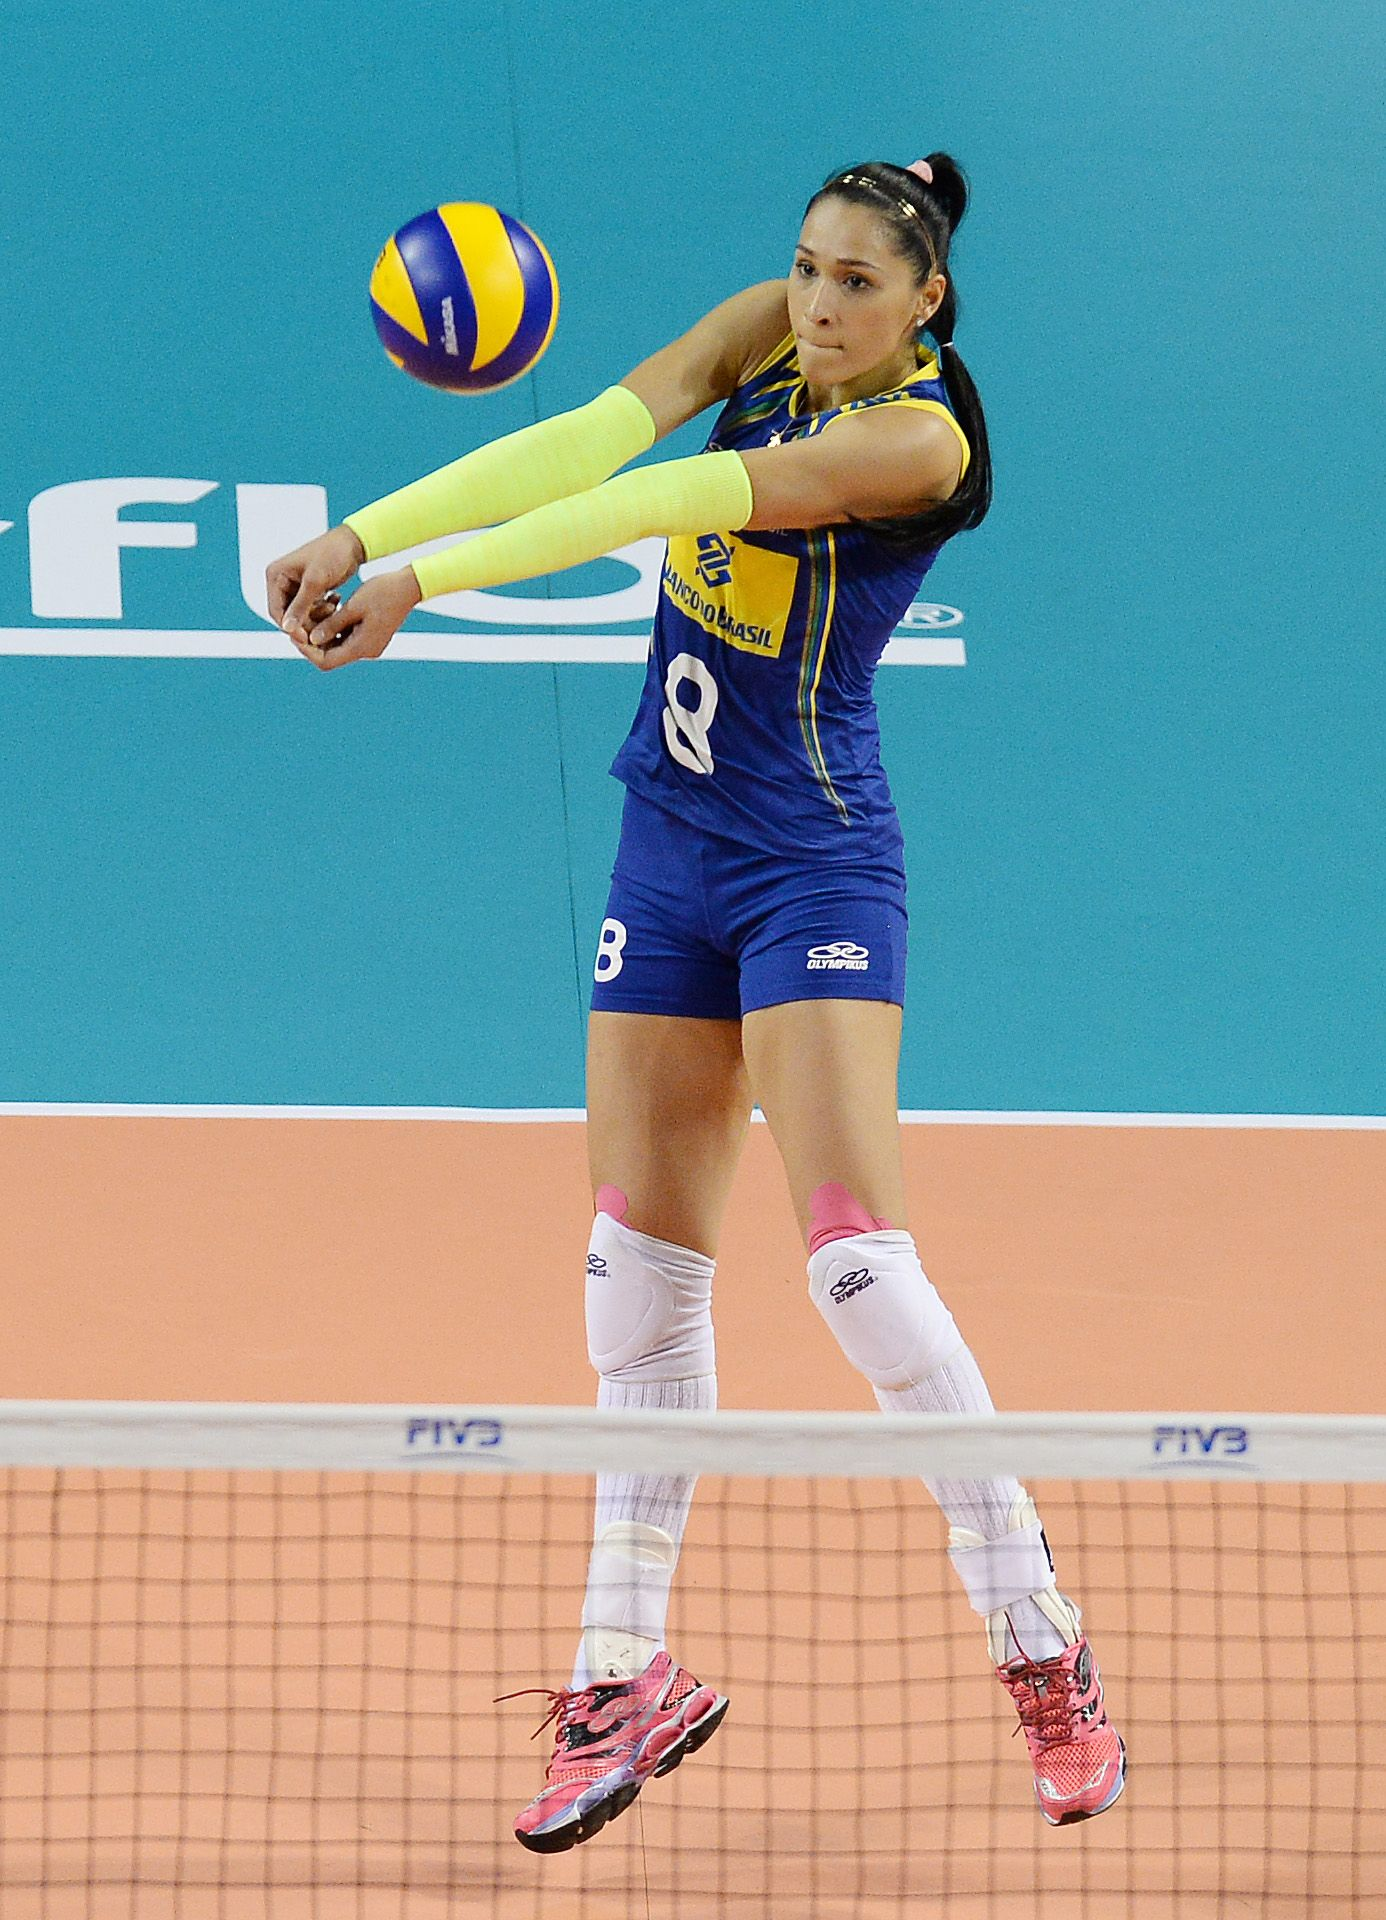 women's volleyball players - HD1386×1920